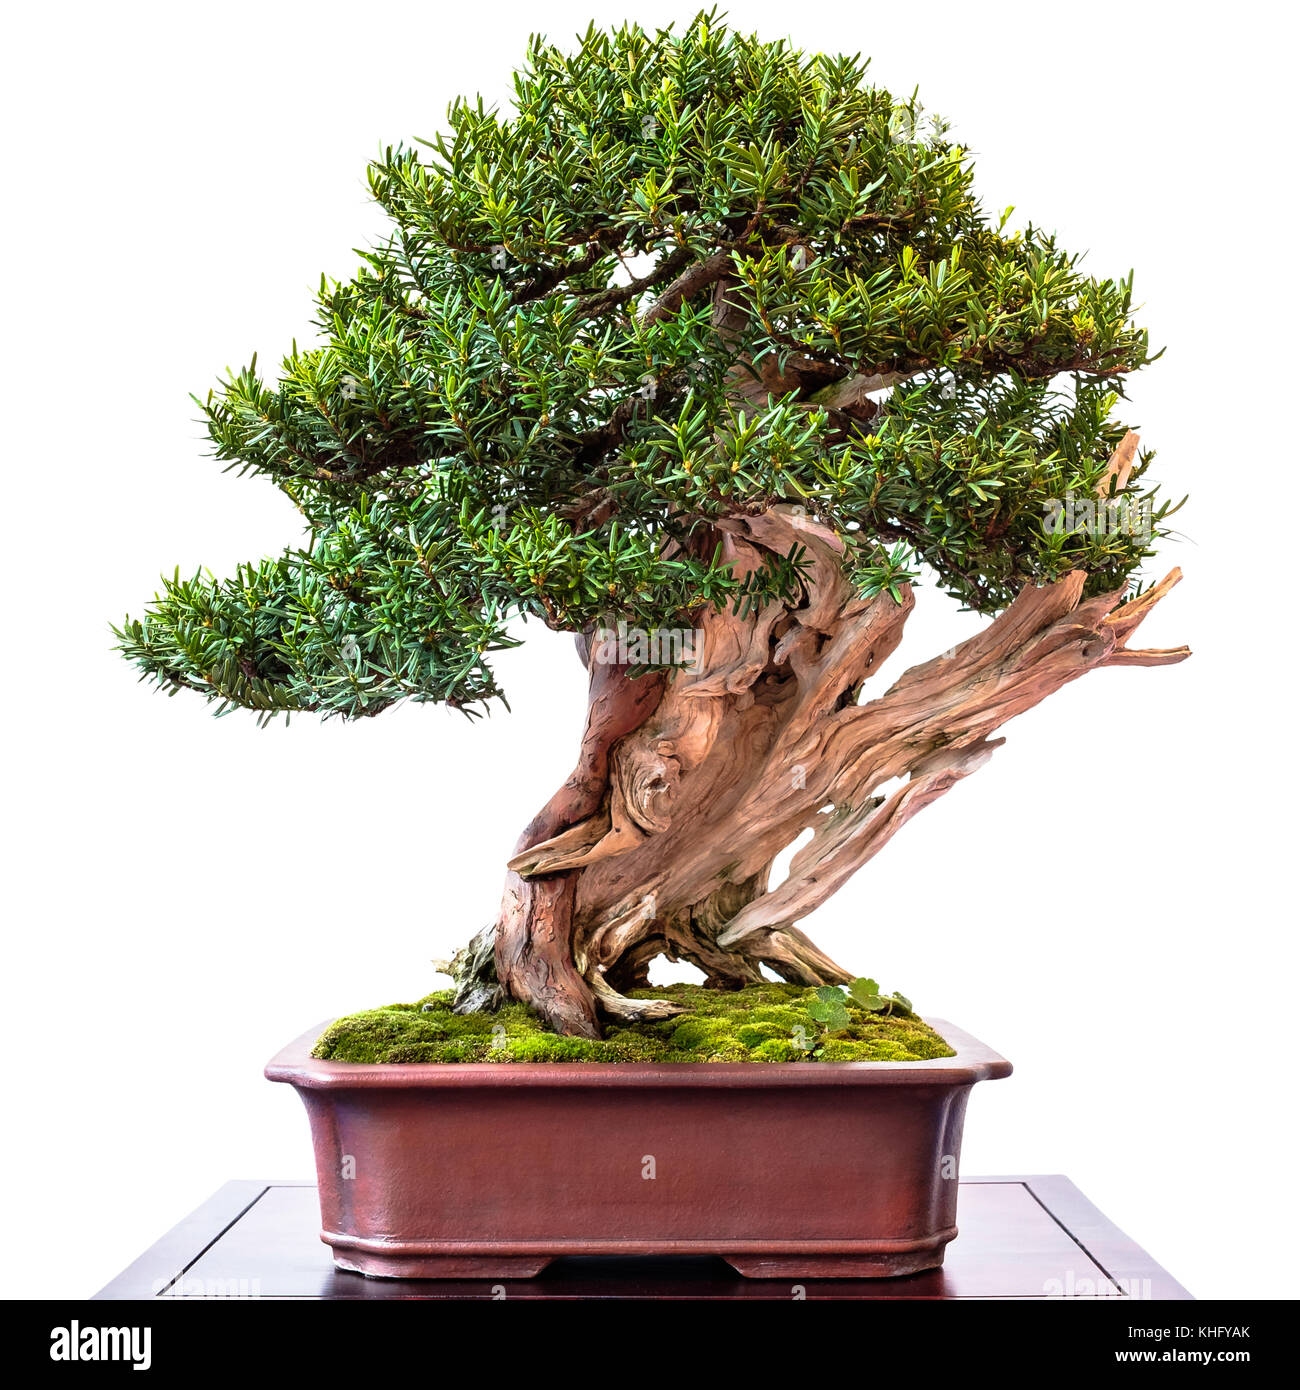 Taxus Cuspidata Stock Photos Taxus Cuspidata Stock Images Alamy